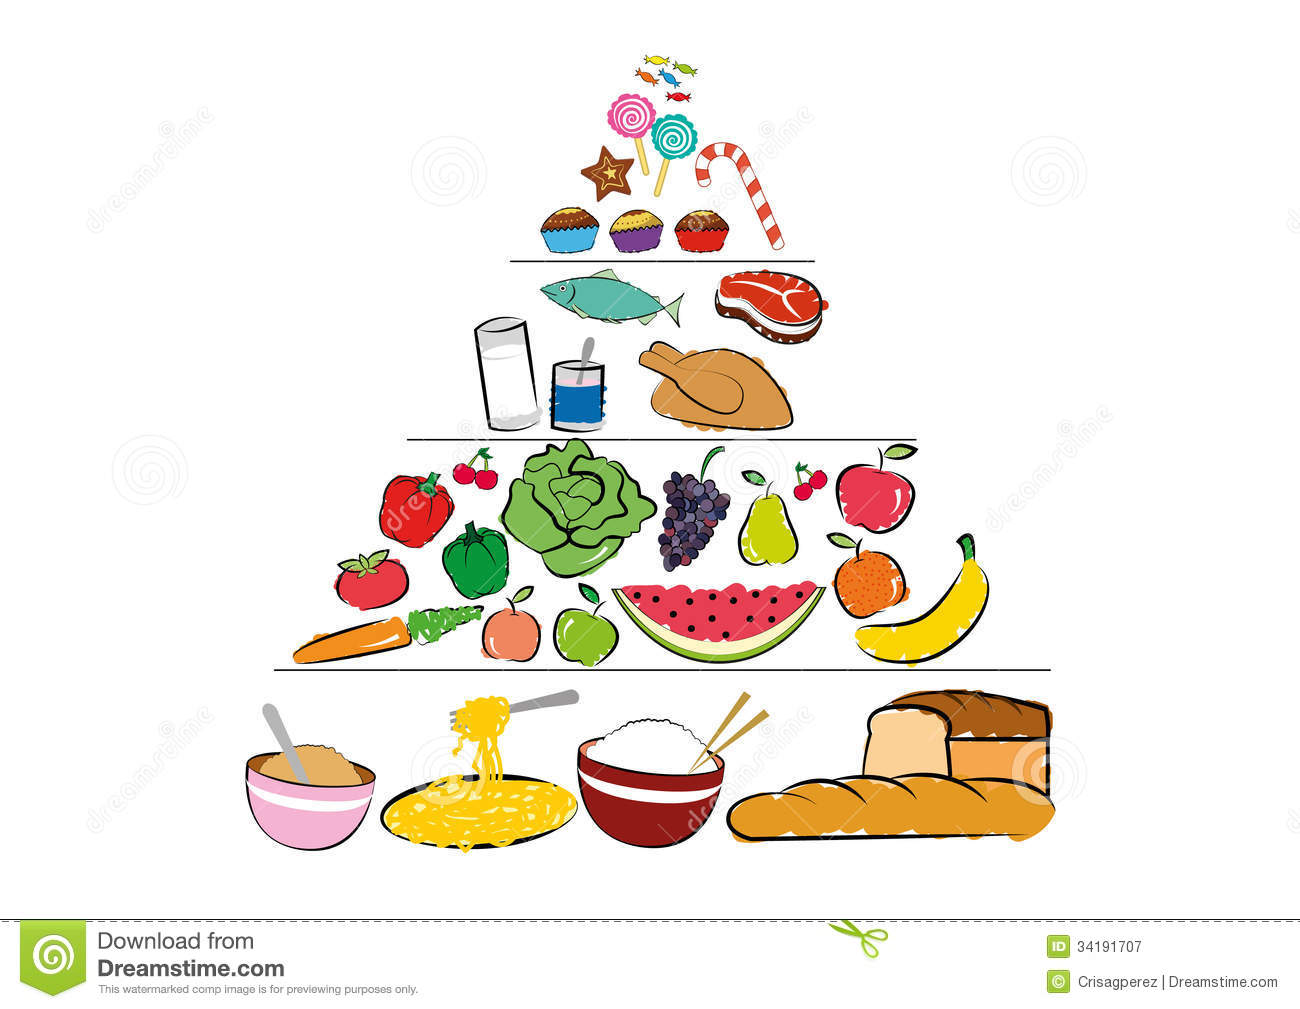 Nutritional Pyramid Royalty Free Stock Photography Image